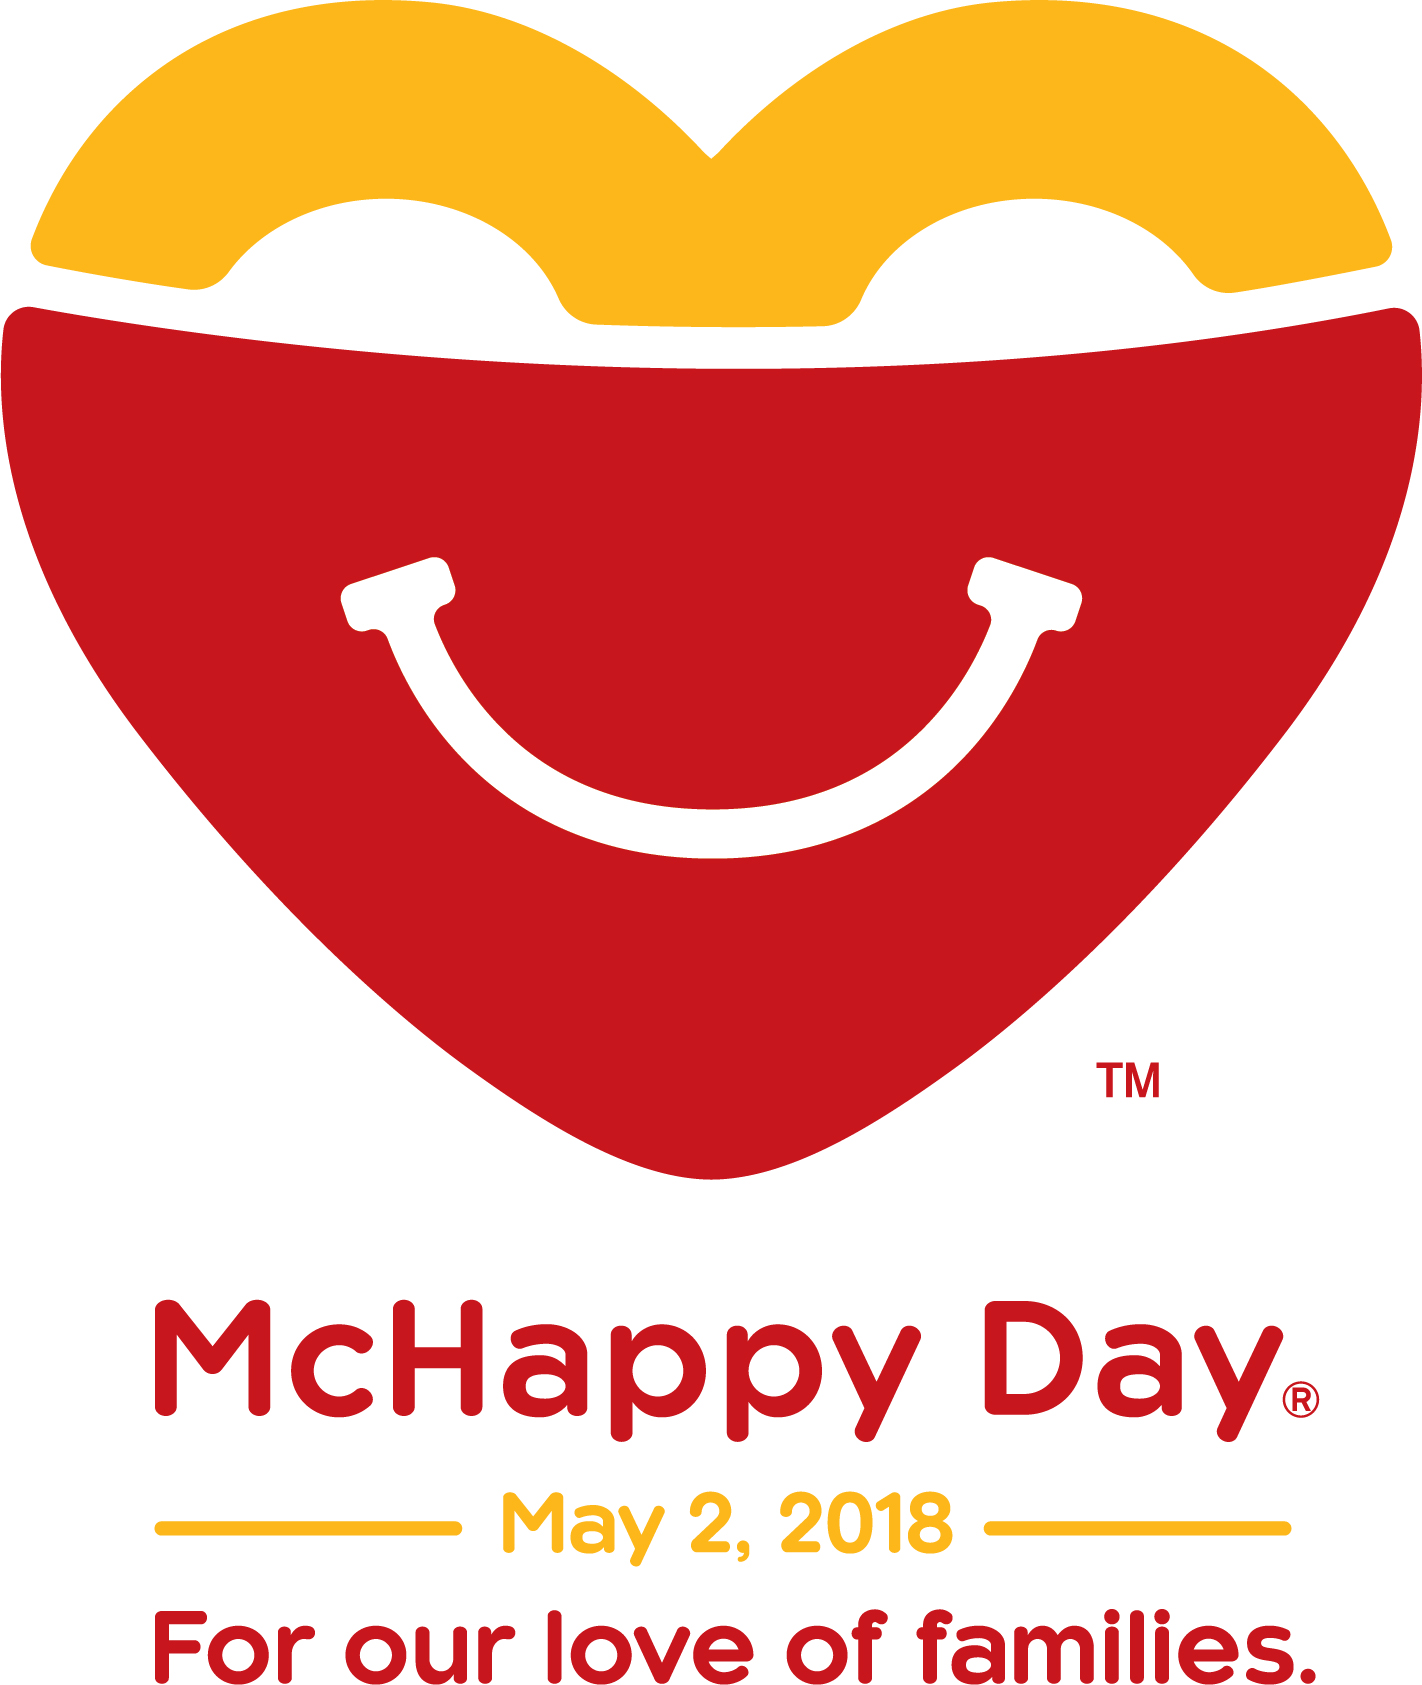 McHappy Day returns May 2nd